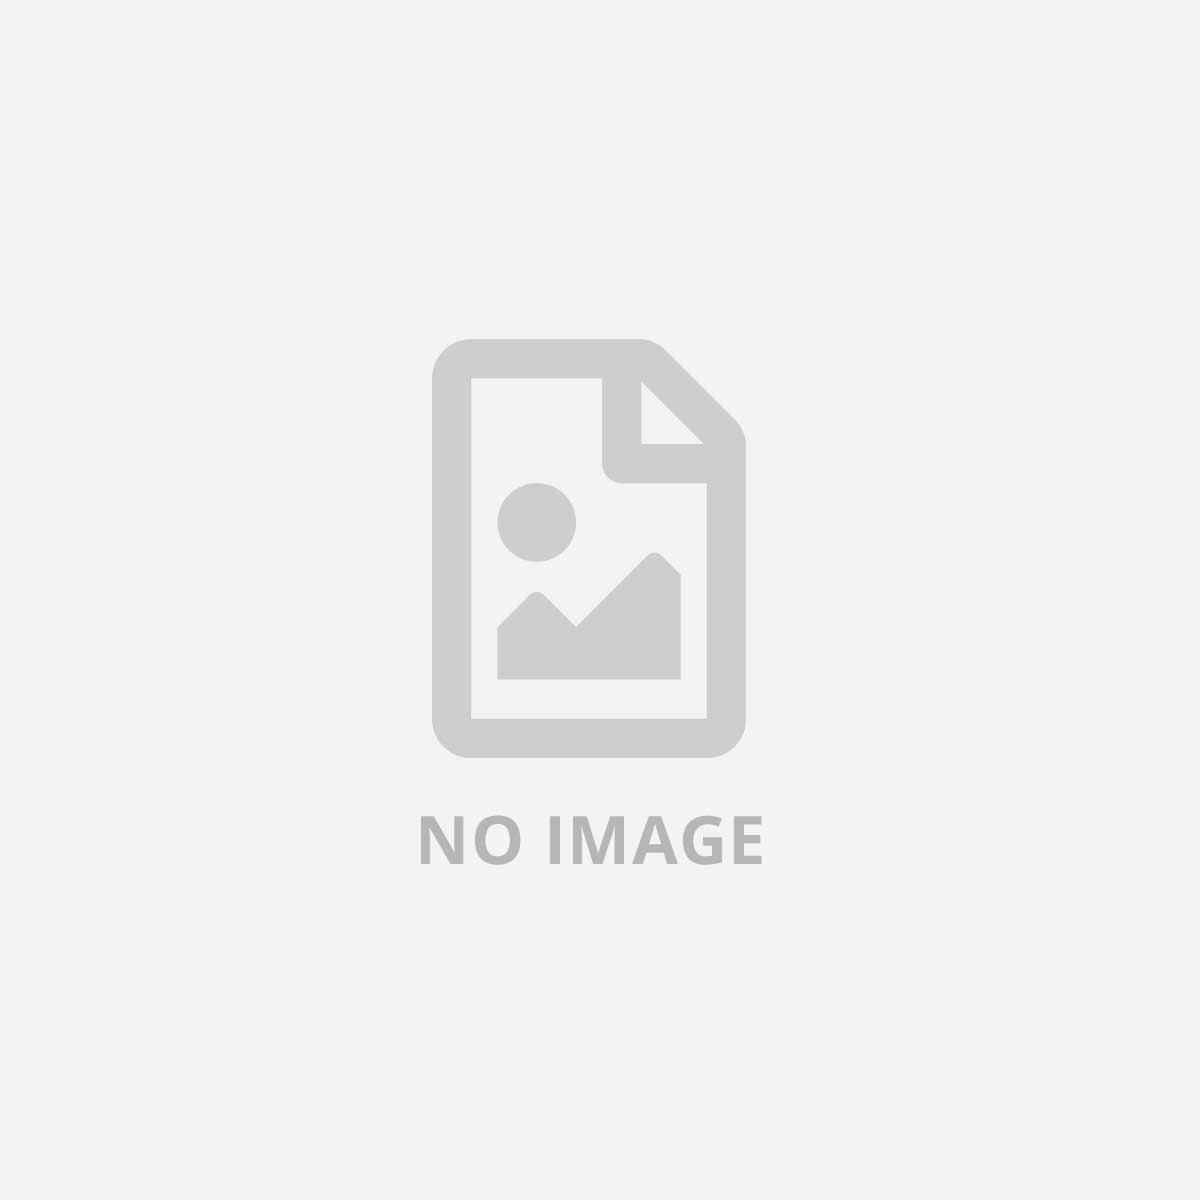 JABRA GN 2100 MONO 3-IN-1 FLEX 82 E-STD